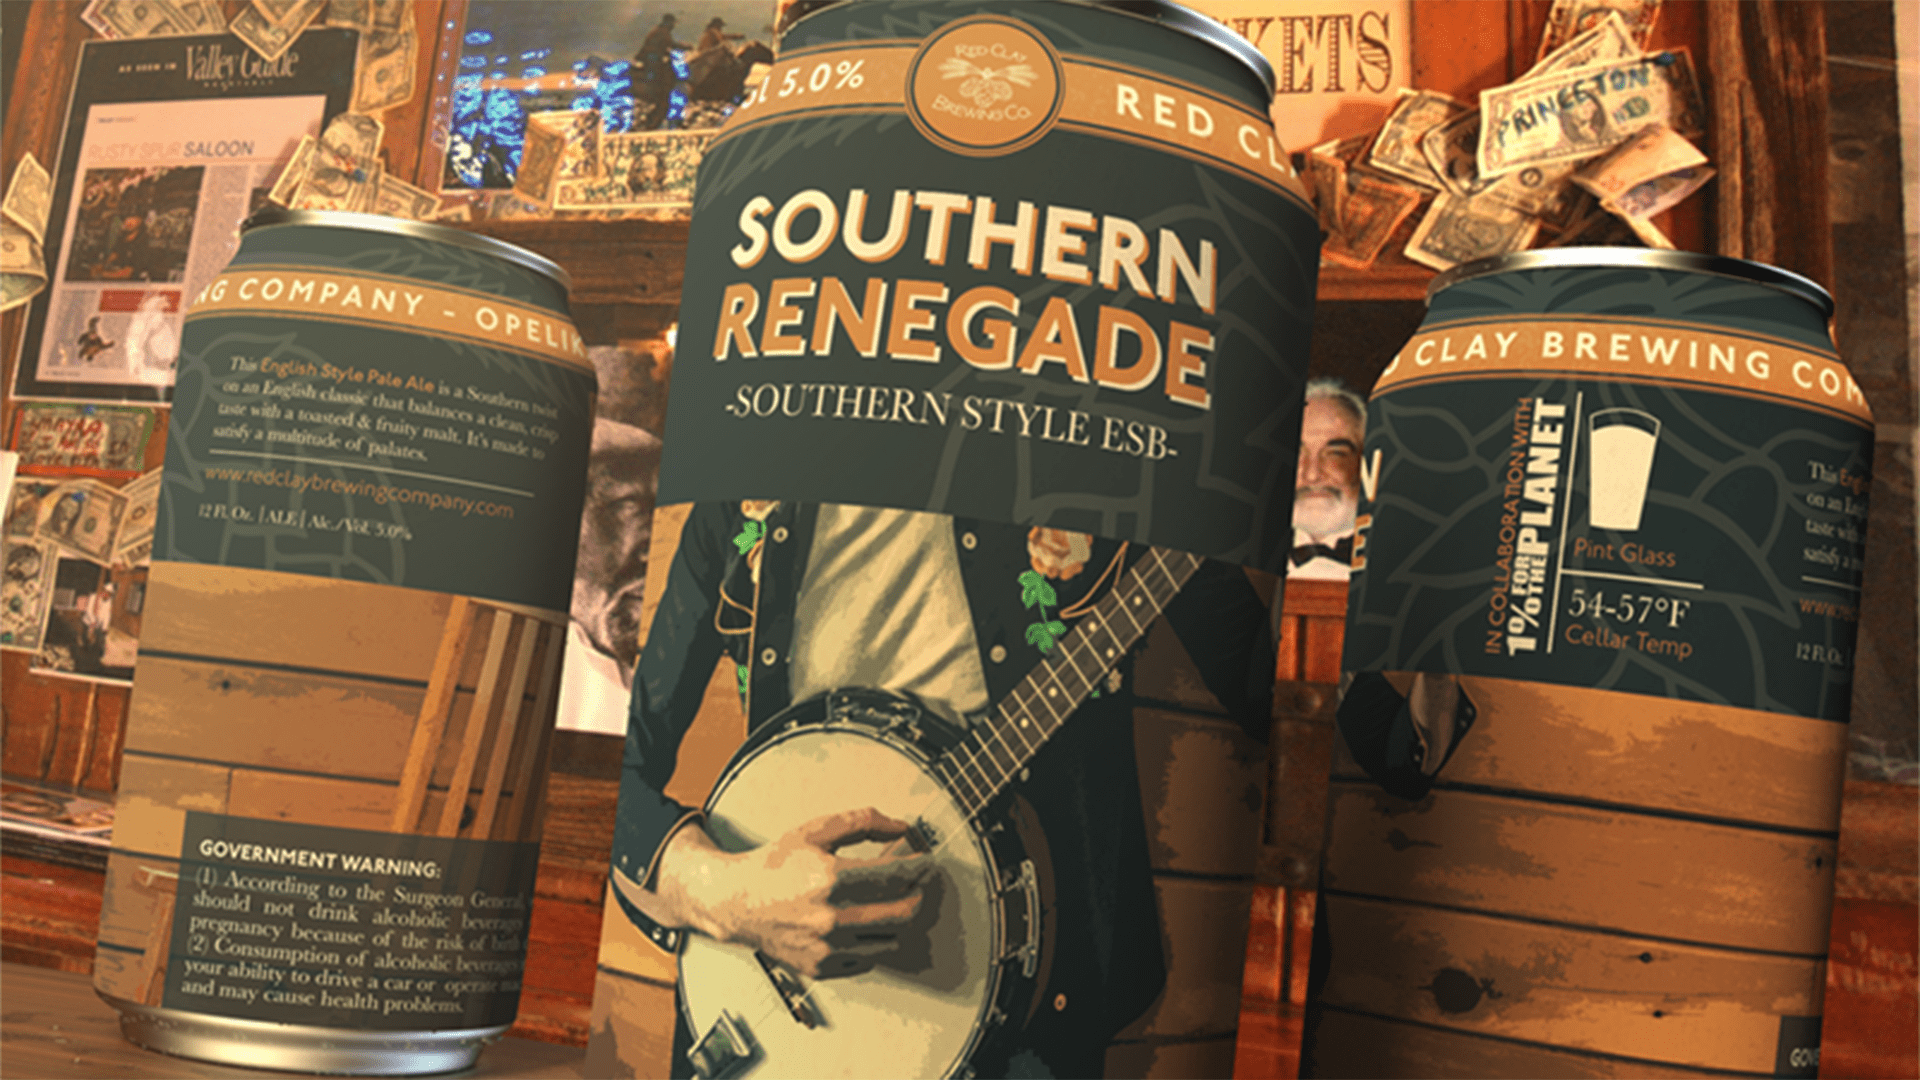 Red Clay Brewing Company Southern Renegade can design